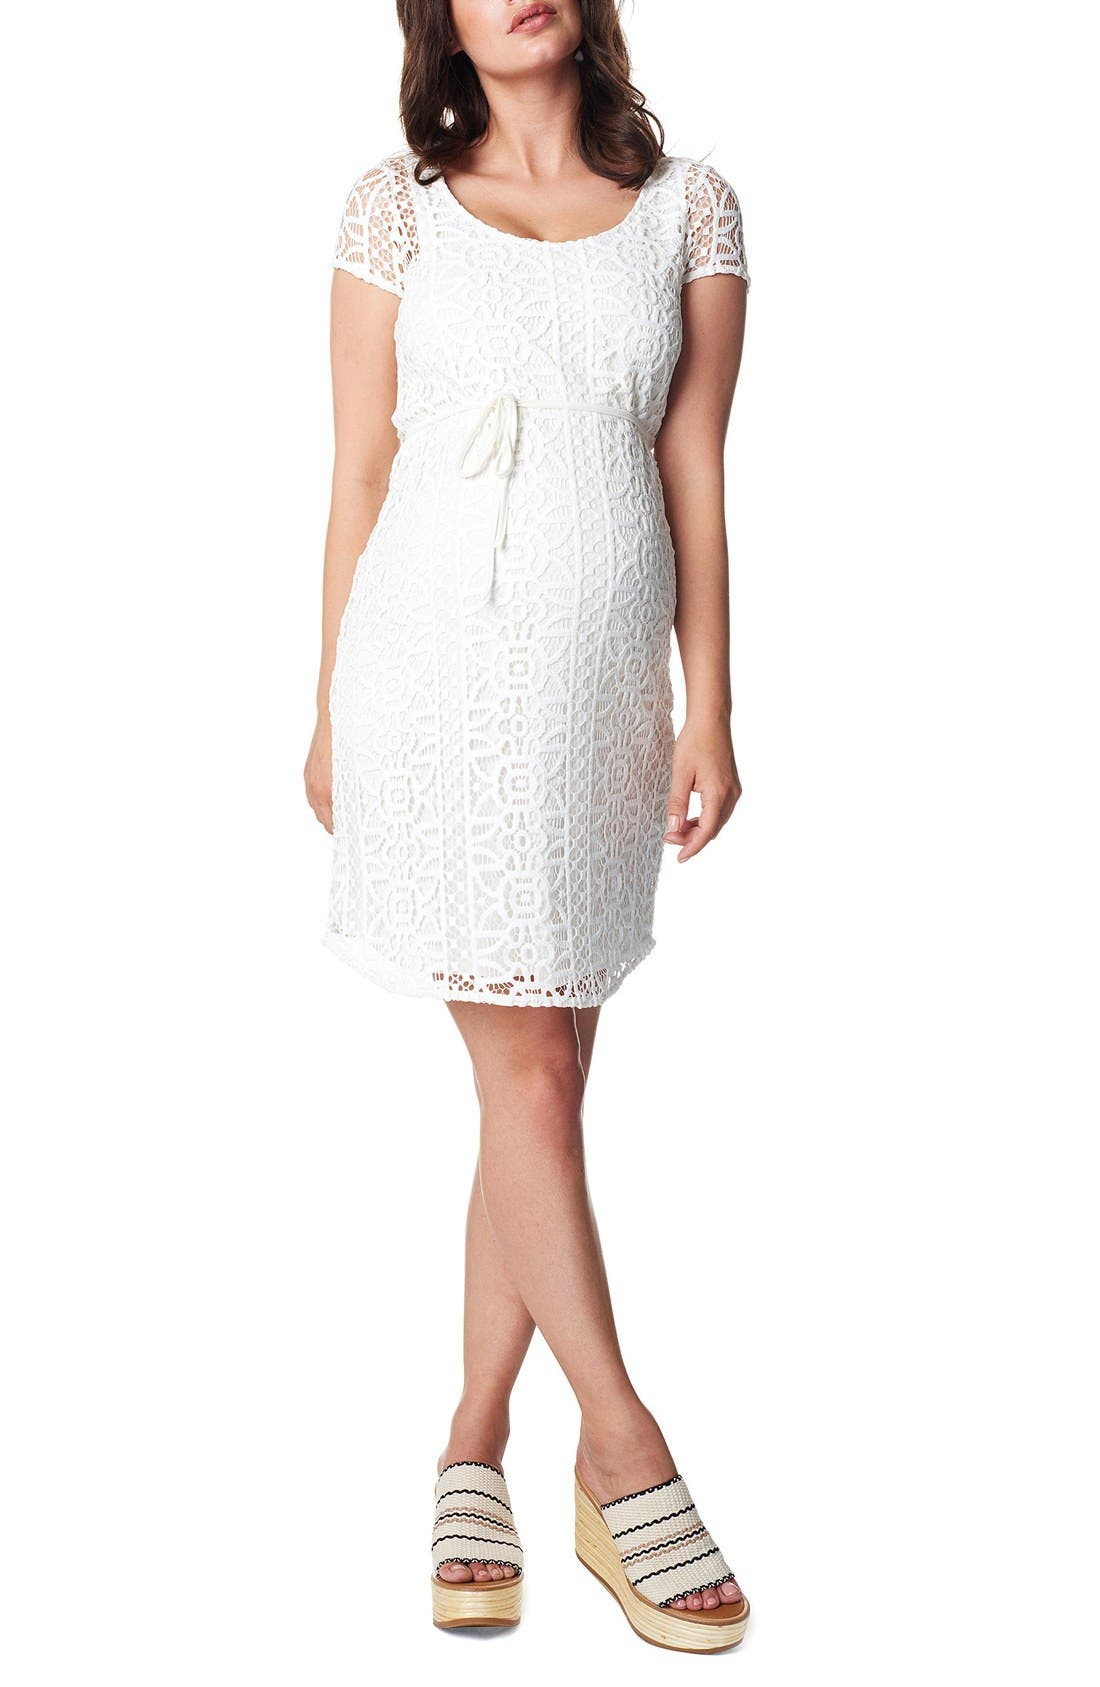 Elise Woven Lace Maternity Dress,                         Main,                         color, OFF WHITE